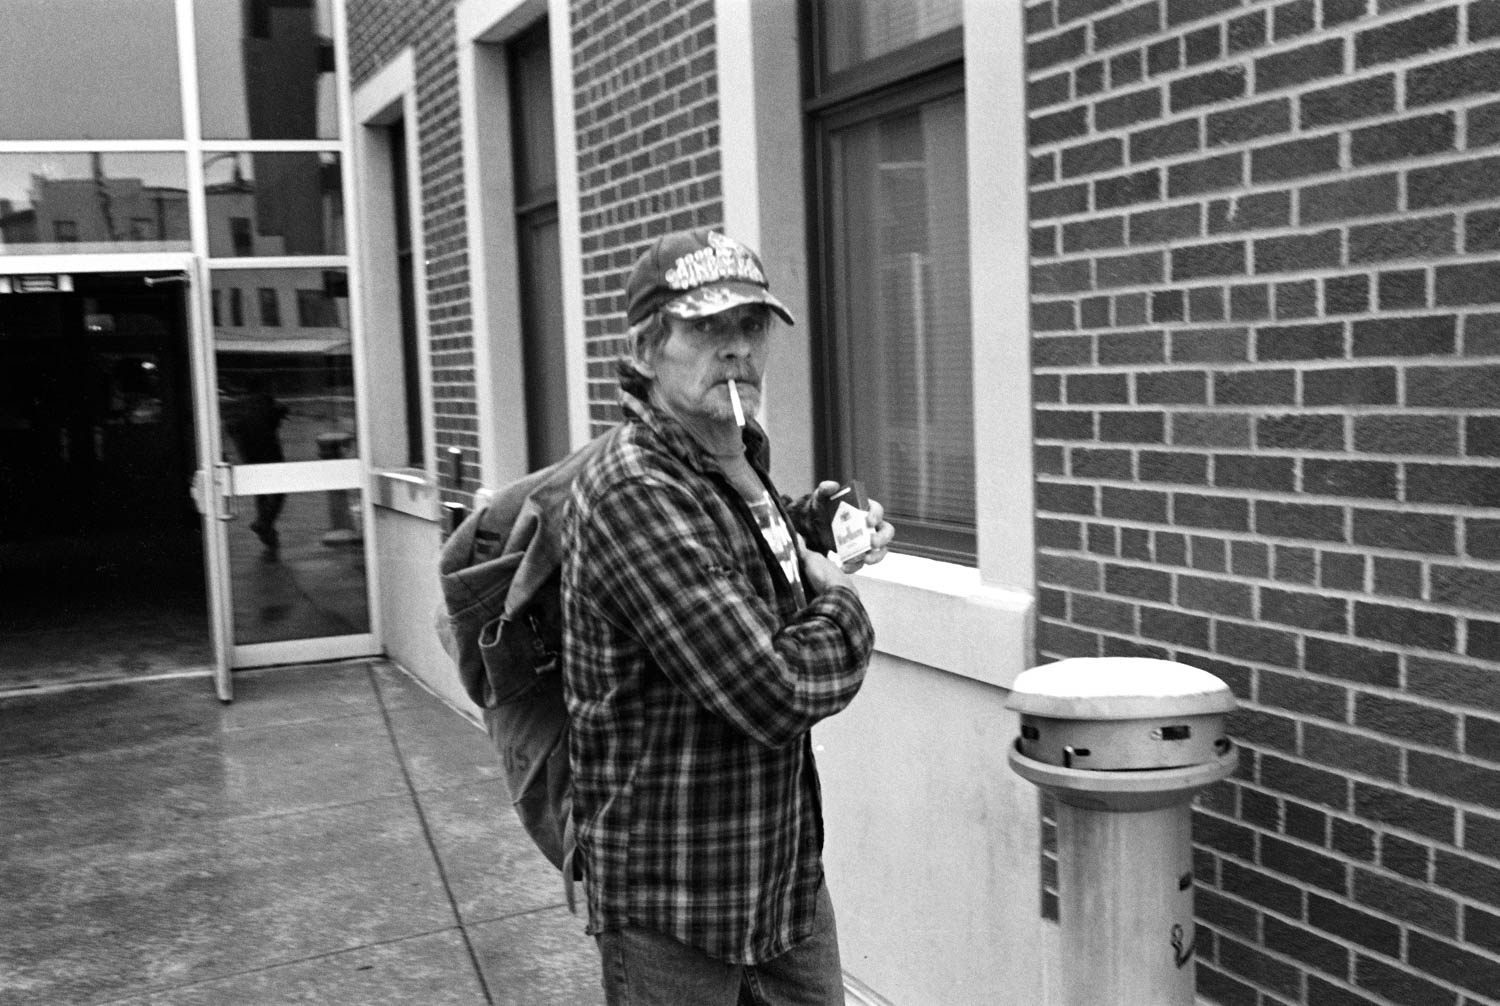 A black and white picture of a man putting a carton of cigarettes back into a flannel shirt pocket while walking out of the B.C. Junction in Binghamton, NY.